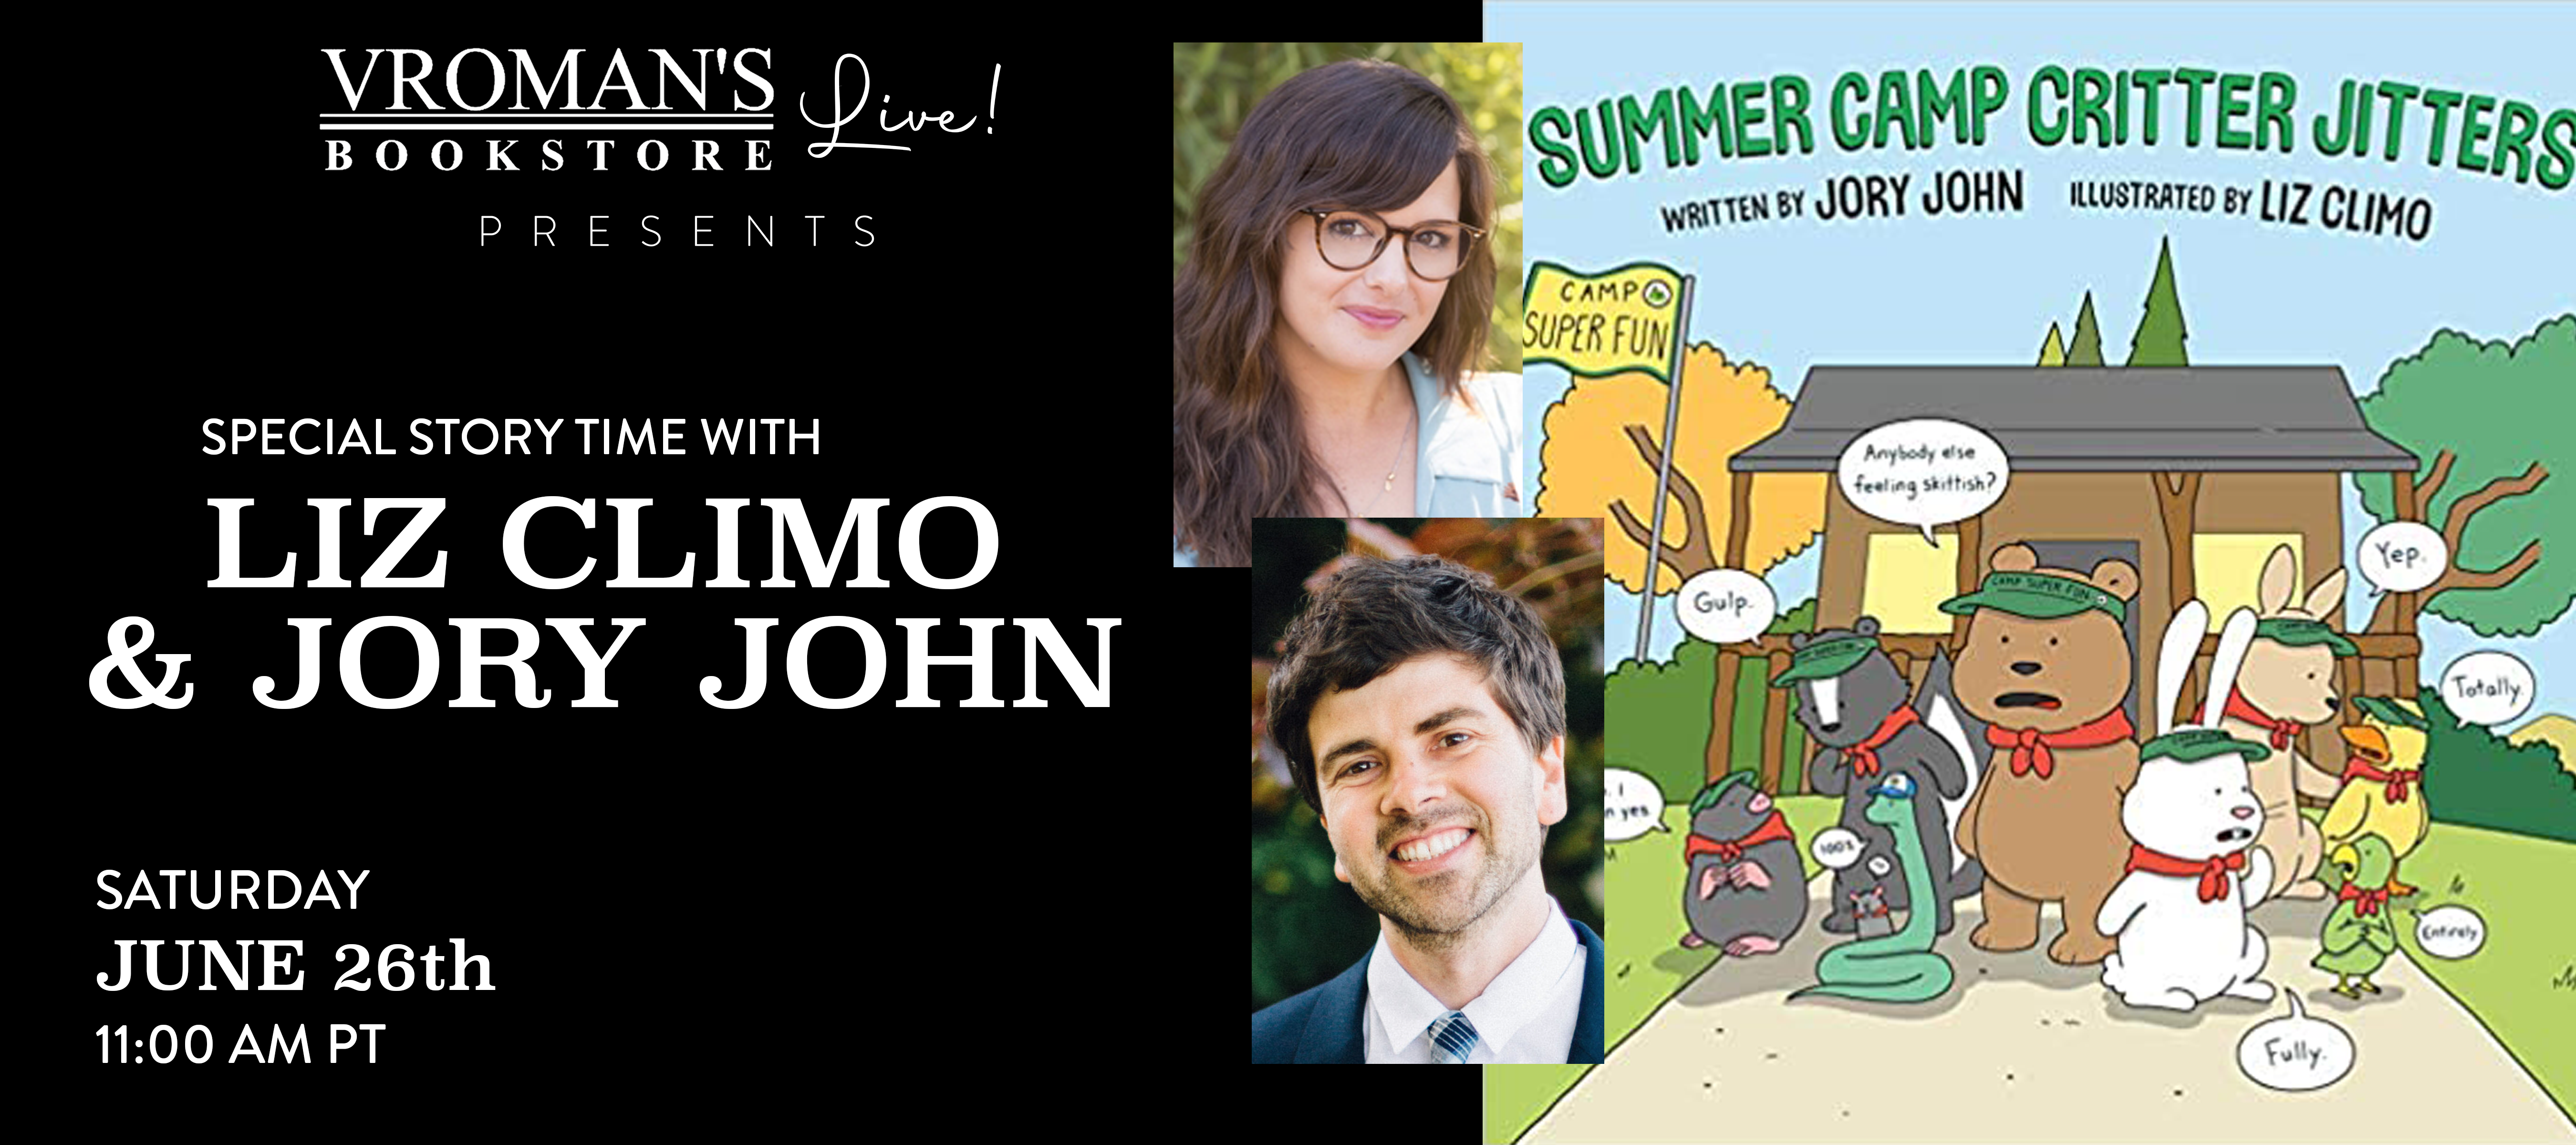 Image of Vroman's Live - Special Story Time with Liz Climo & Jory John presenting Summer Camp Critter Jitters on June 26th at 11am on Crowdcast